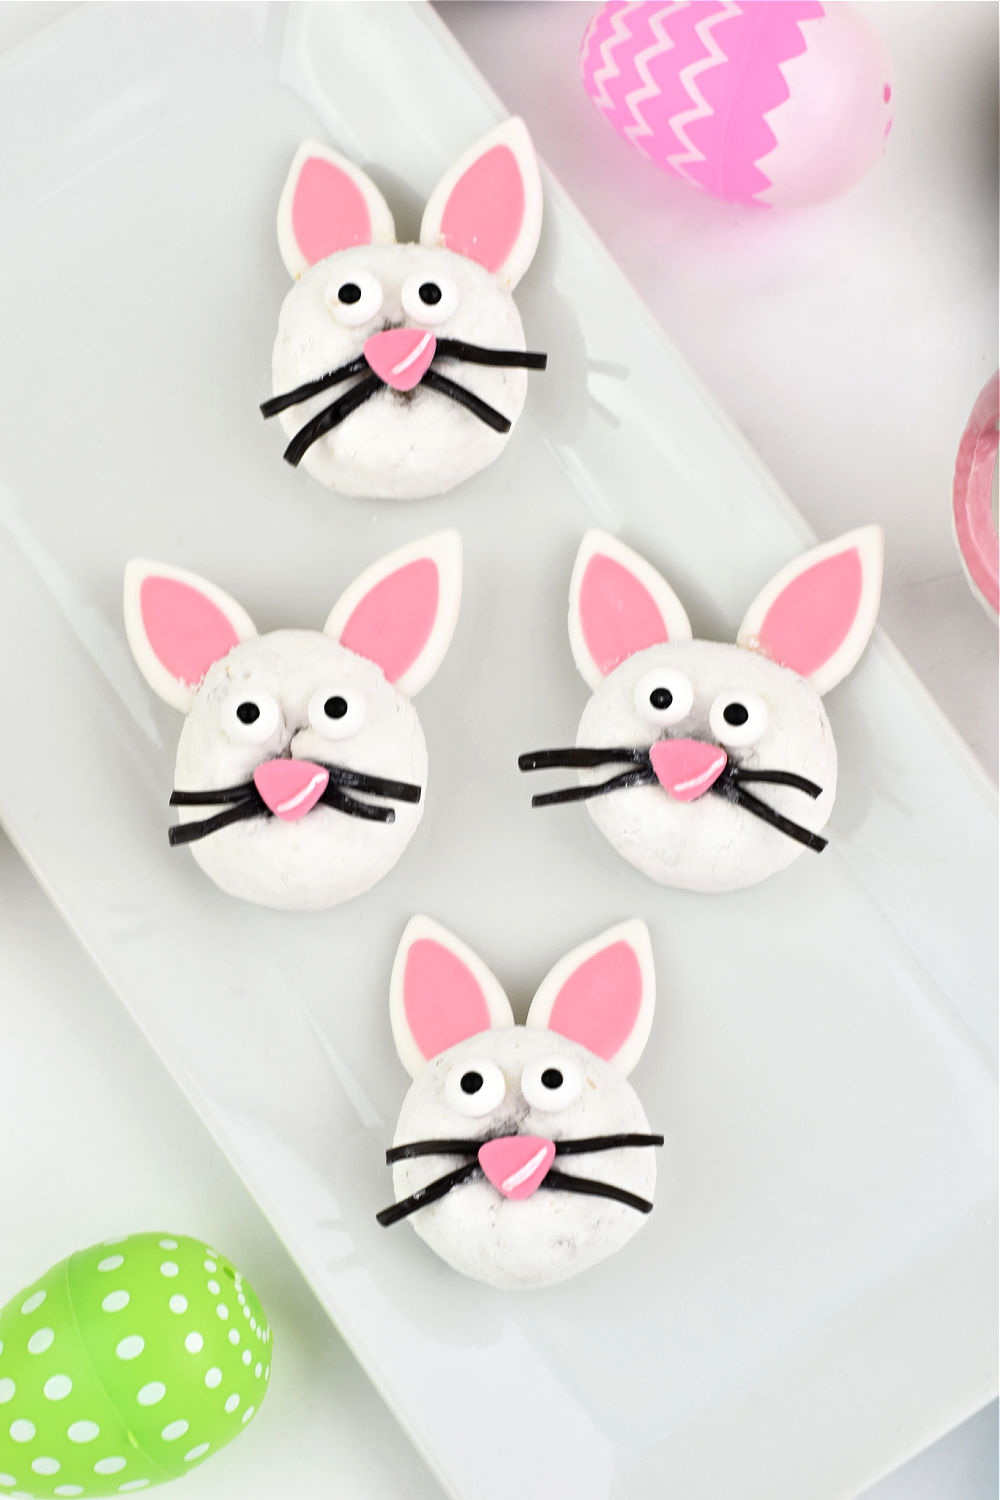 Delicious white powdered donuts are topped with adorable bunny ears and faces in this fun no-bake Easter dessert recipe that doubles as Easter dessert table decor.